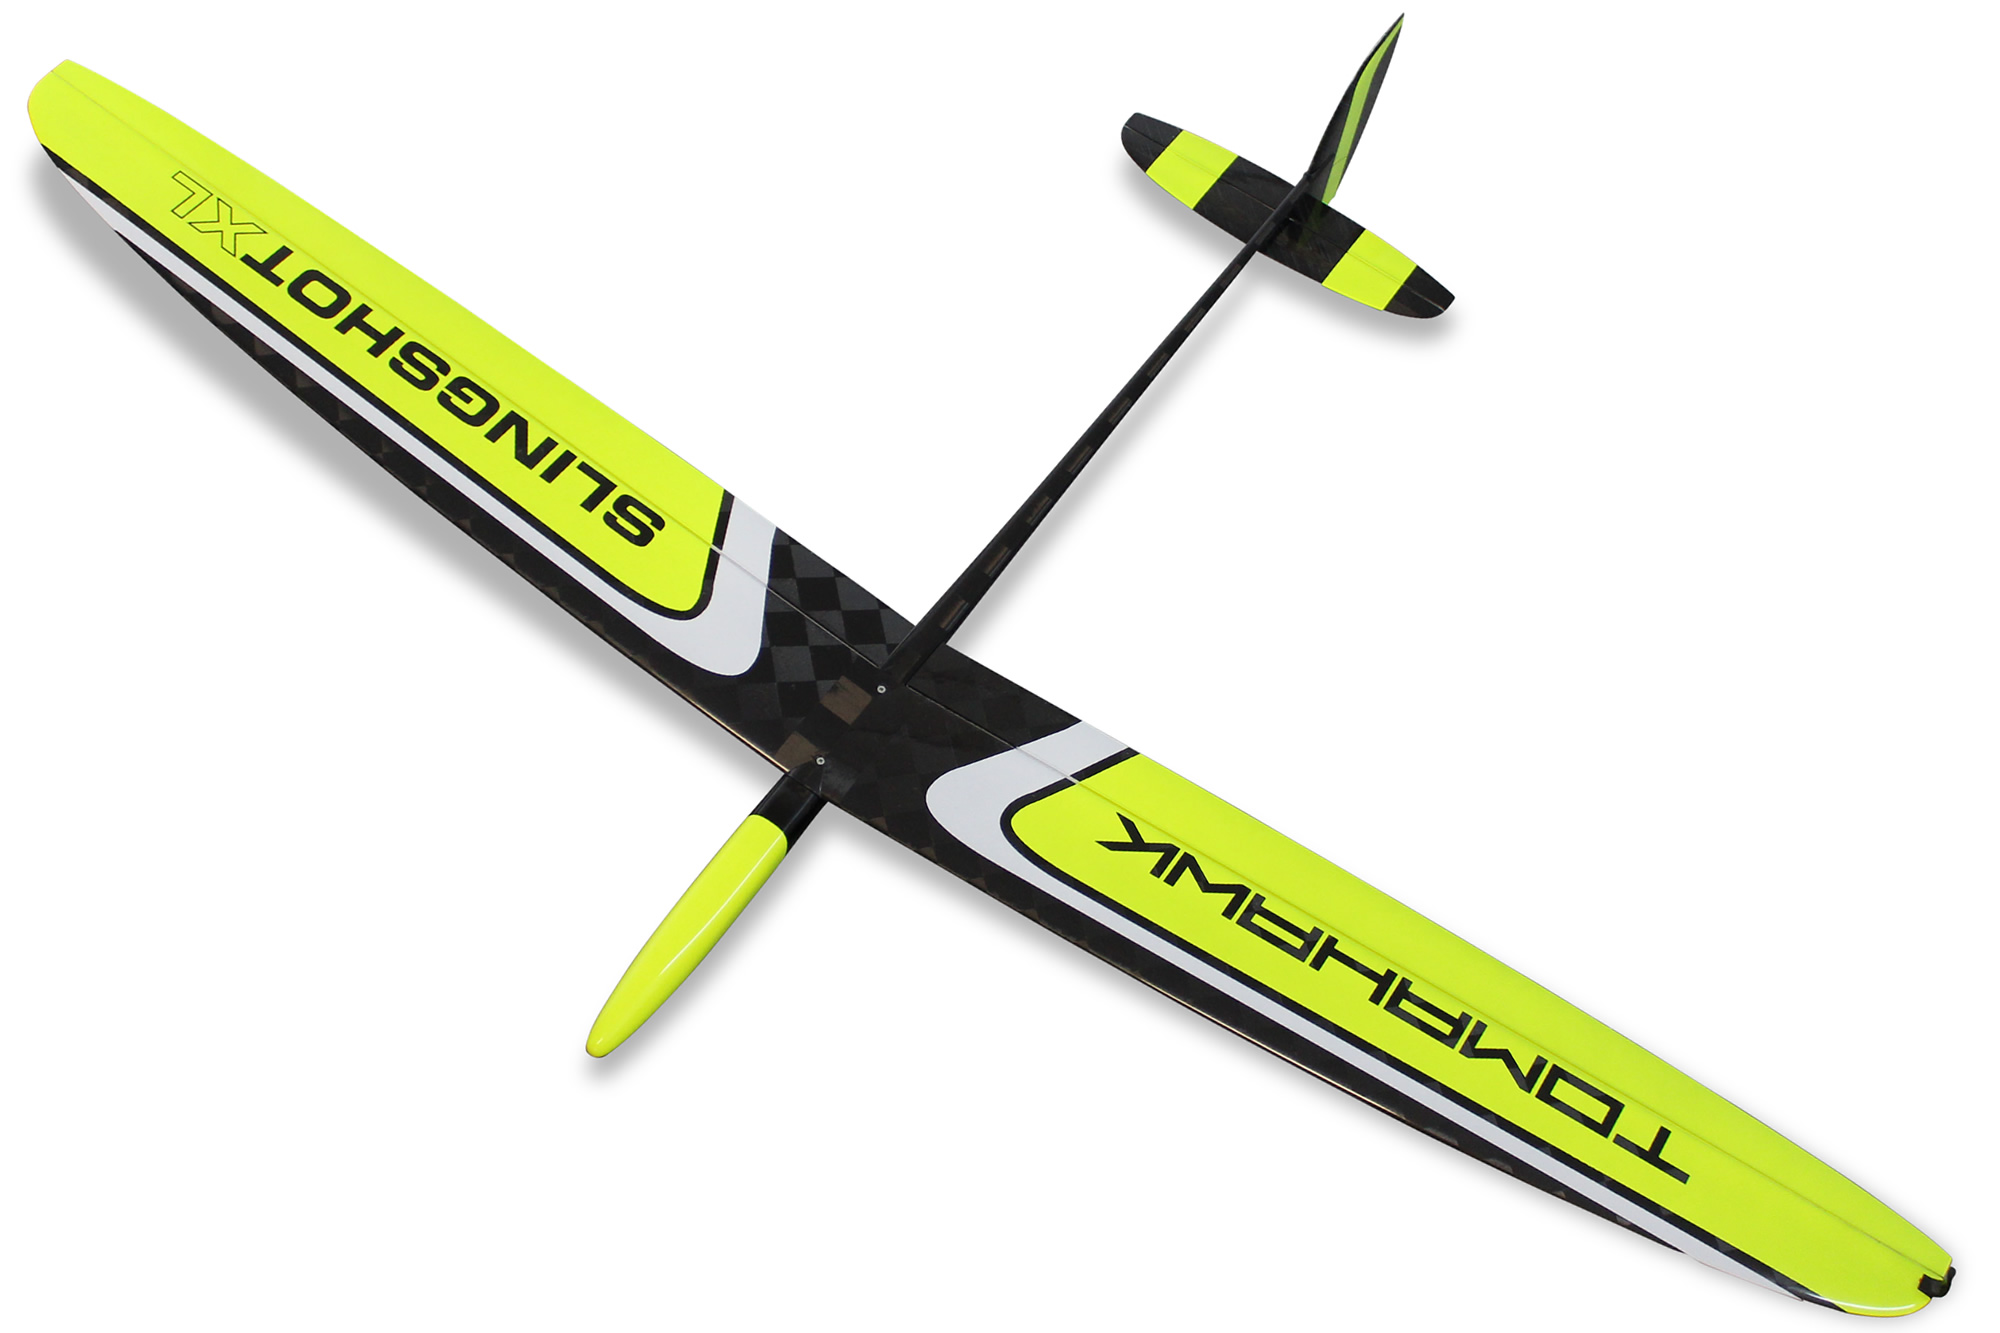 Slingshot XL Tomahawk Aviation